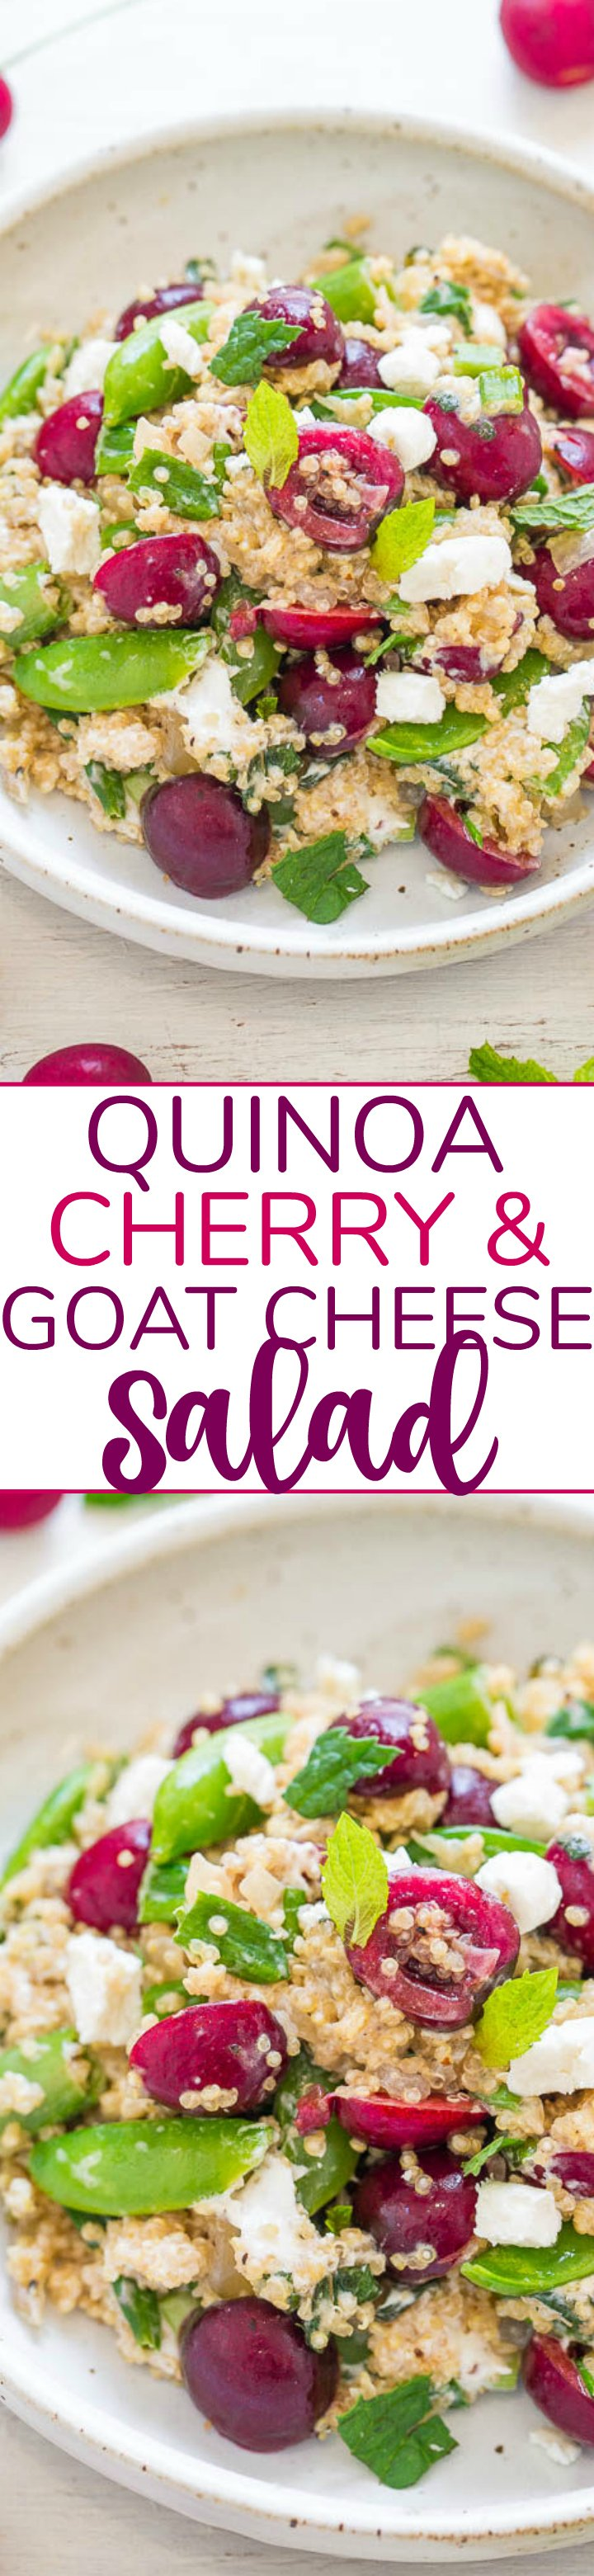 Quinoa, Cherry, and Goat Cheese Salad - Healthy, EASY, and loaded with juicy cherries, tangy goat cheese, snap peas, mint, and more!! The PERFECT light yet satisfying salad with so many great flavors!!